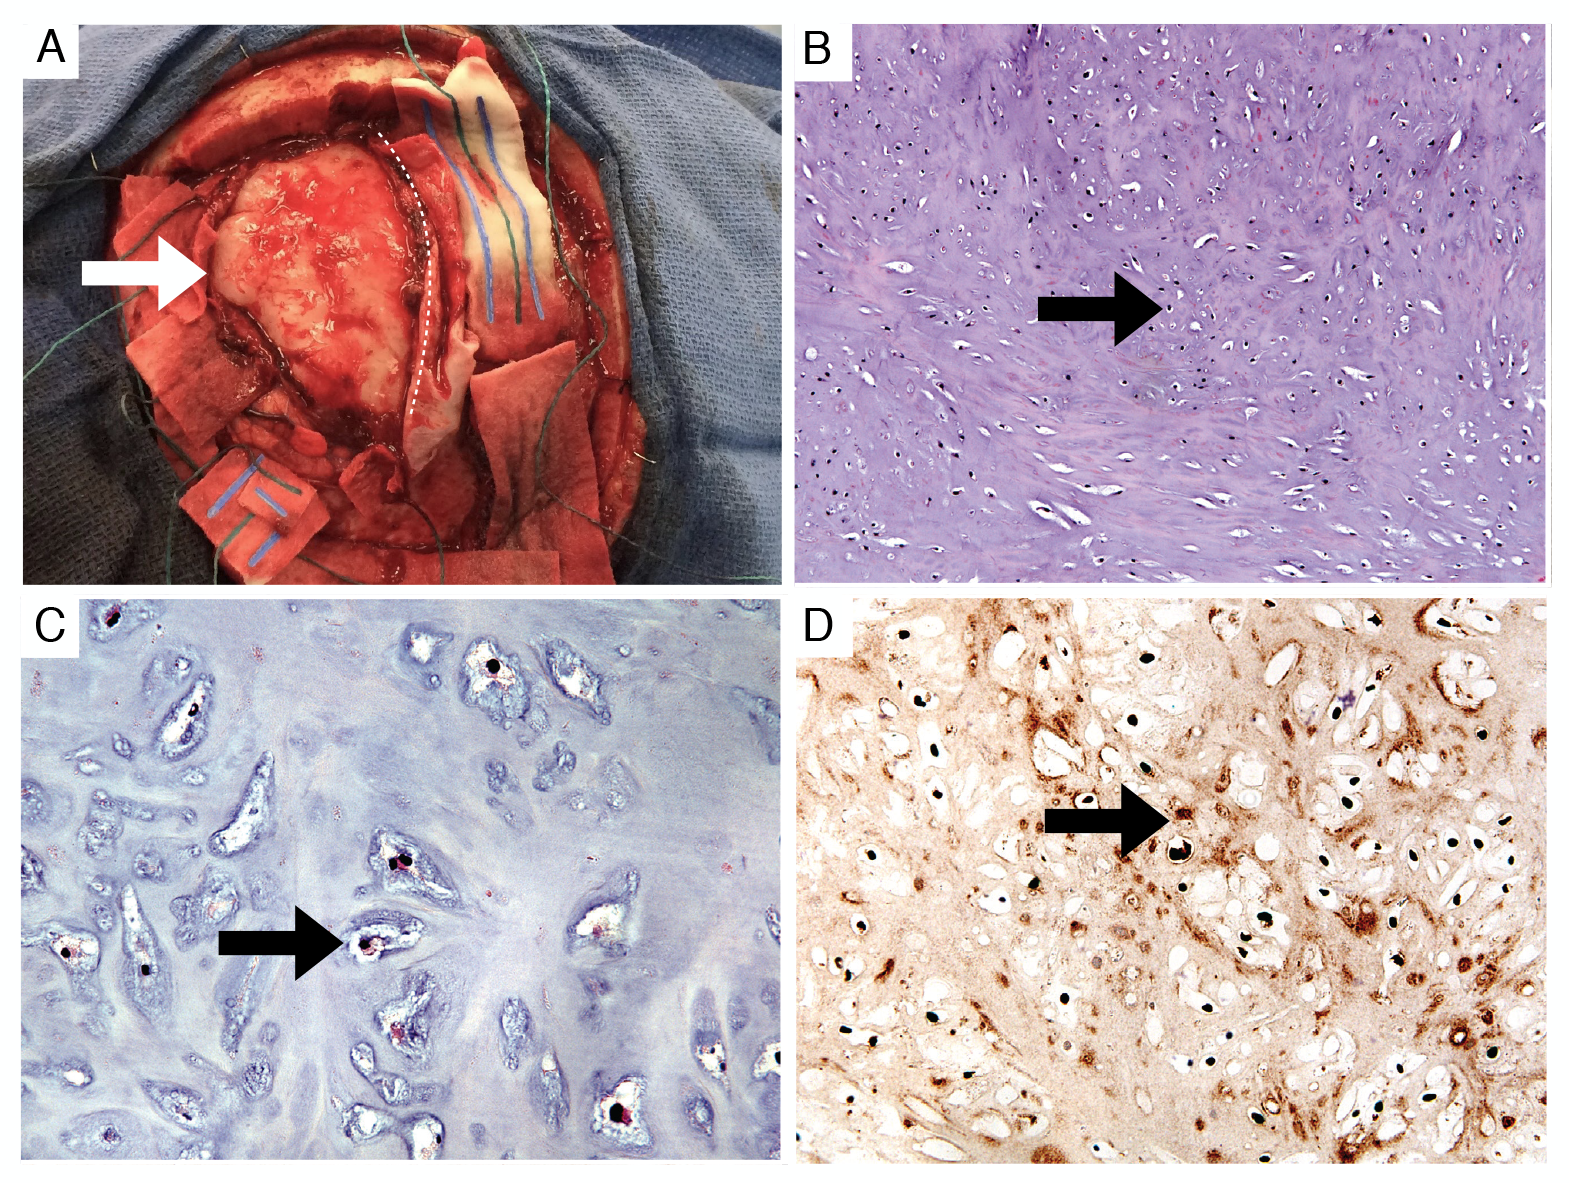 Gross-appearance-and-histology-of-the-tumor